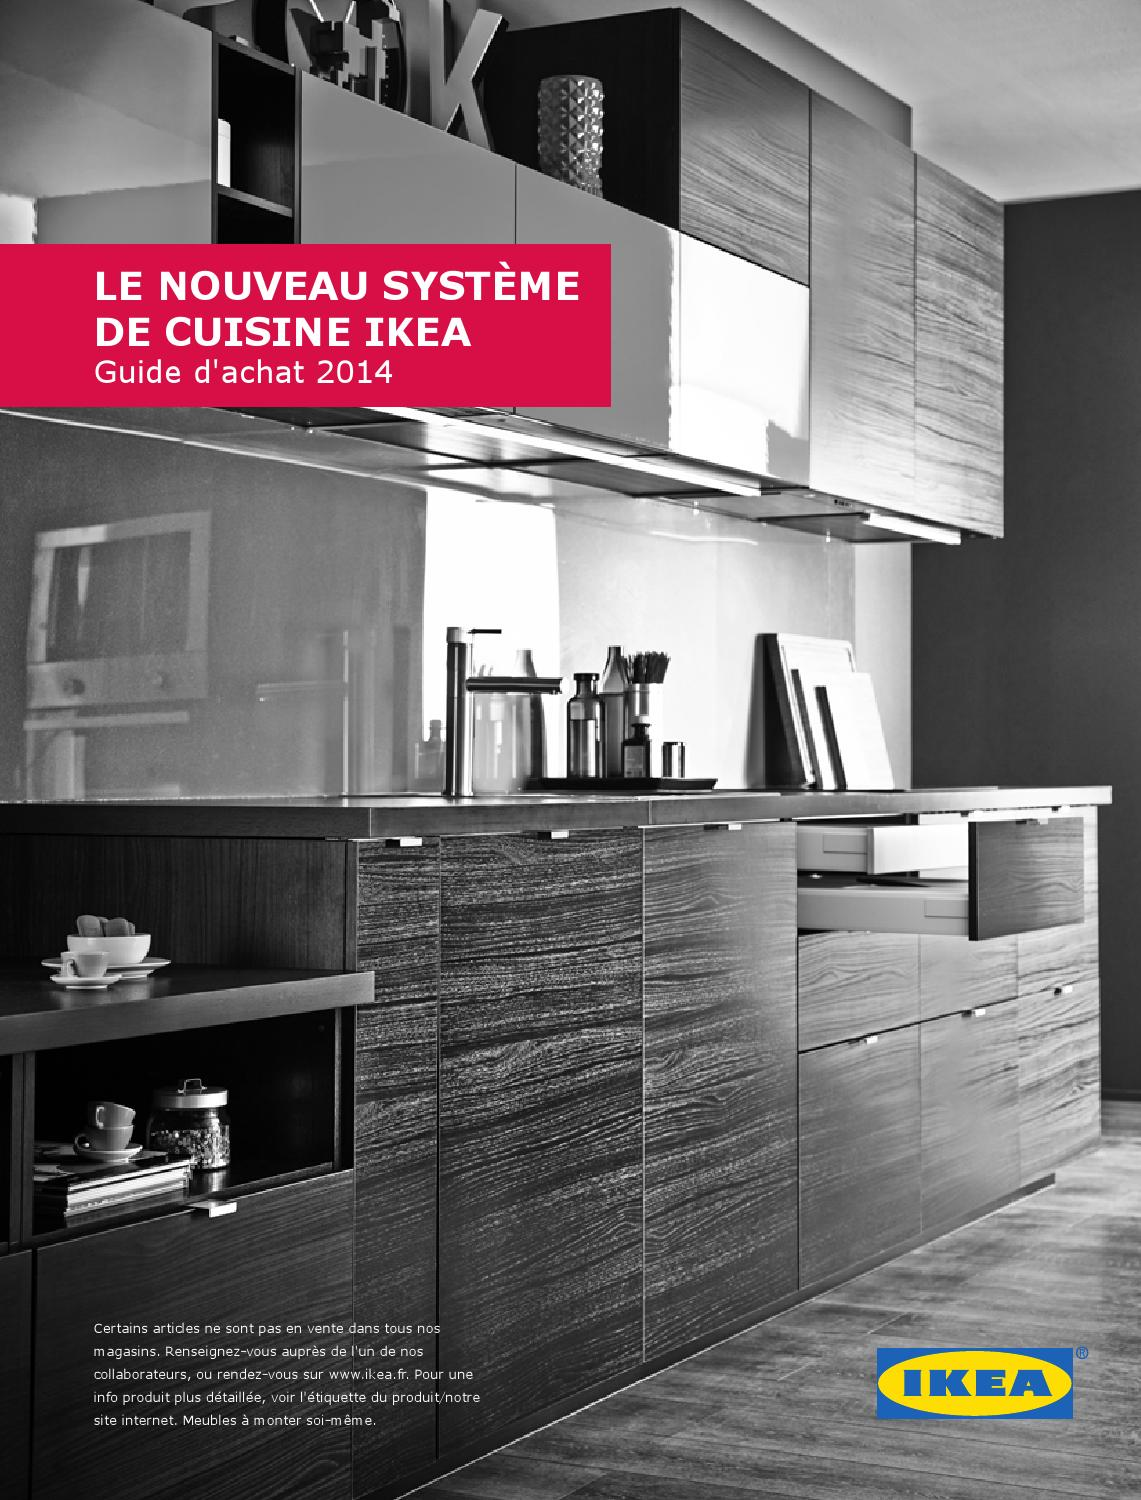 le nouveau cuisine ikea 2014 by ikea catalog issuu. Black Bedroom Furniture Sets. Home Design Ideas